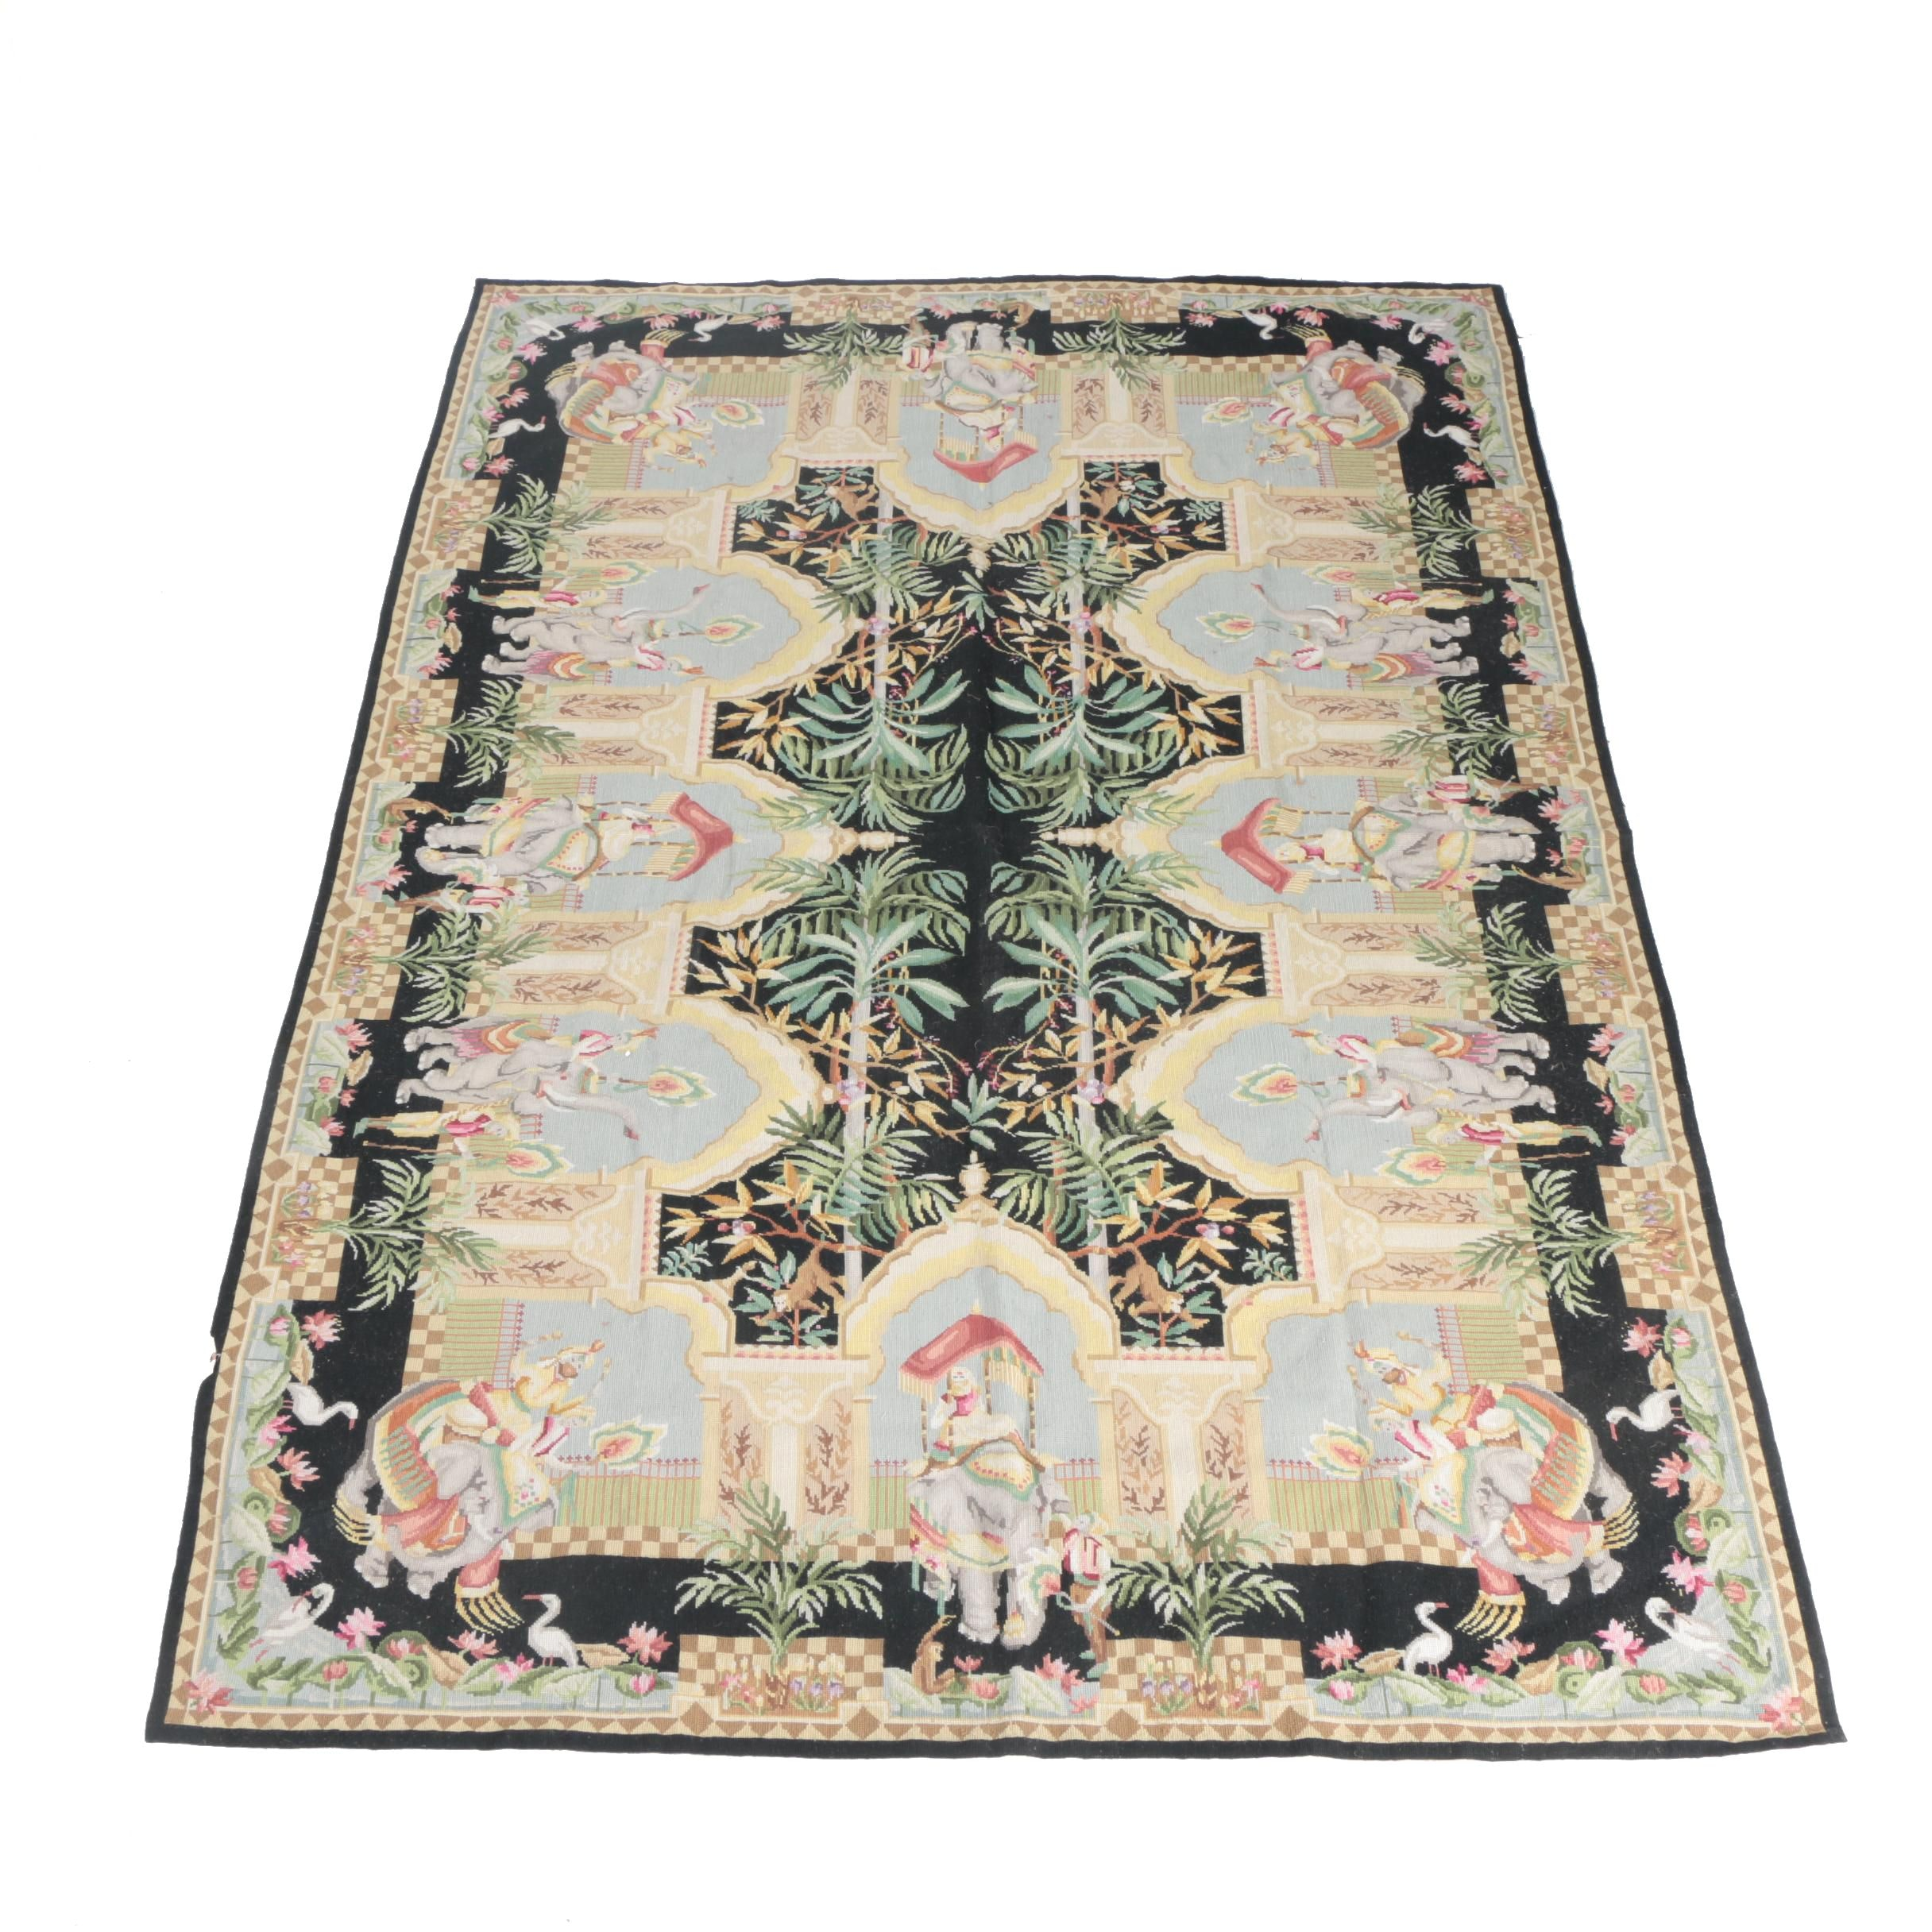 Needlepoint Pictorial Wool Area Rug